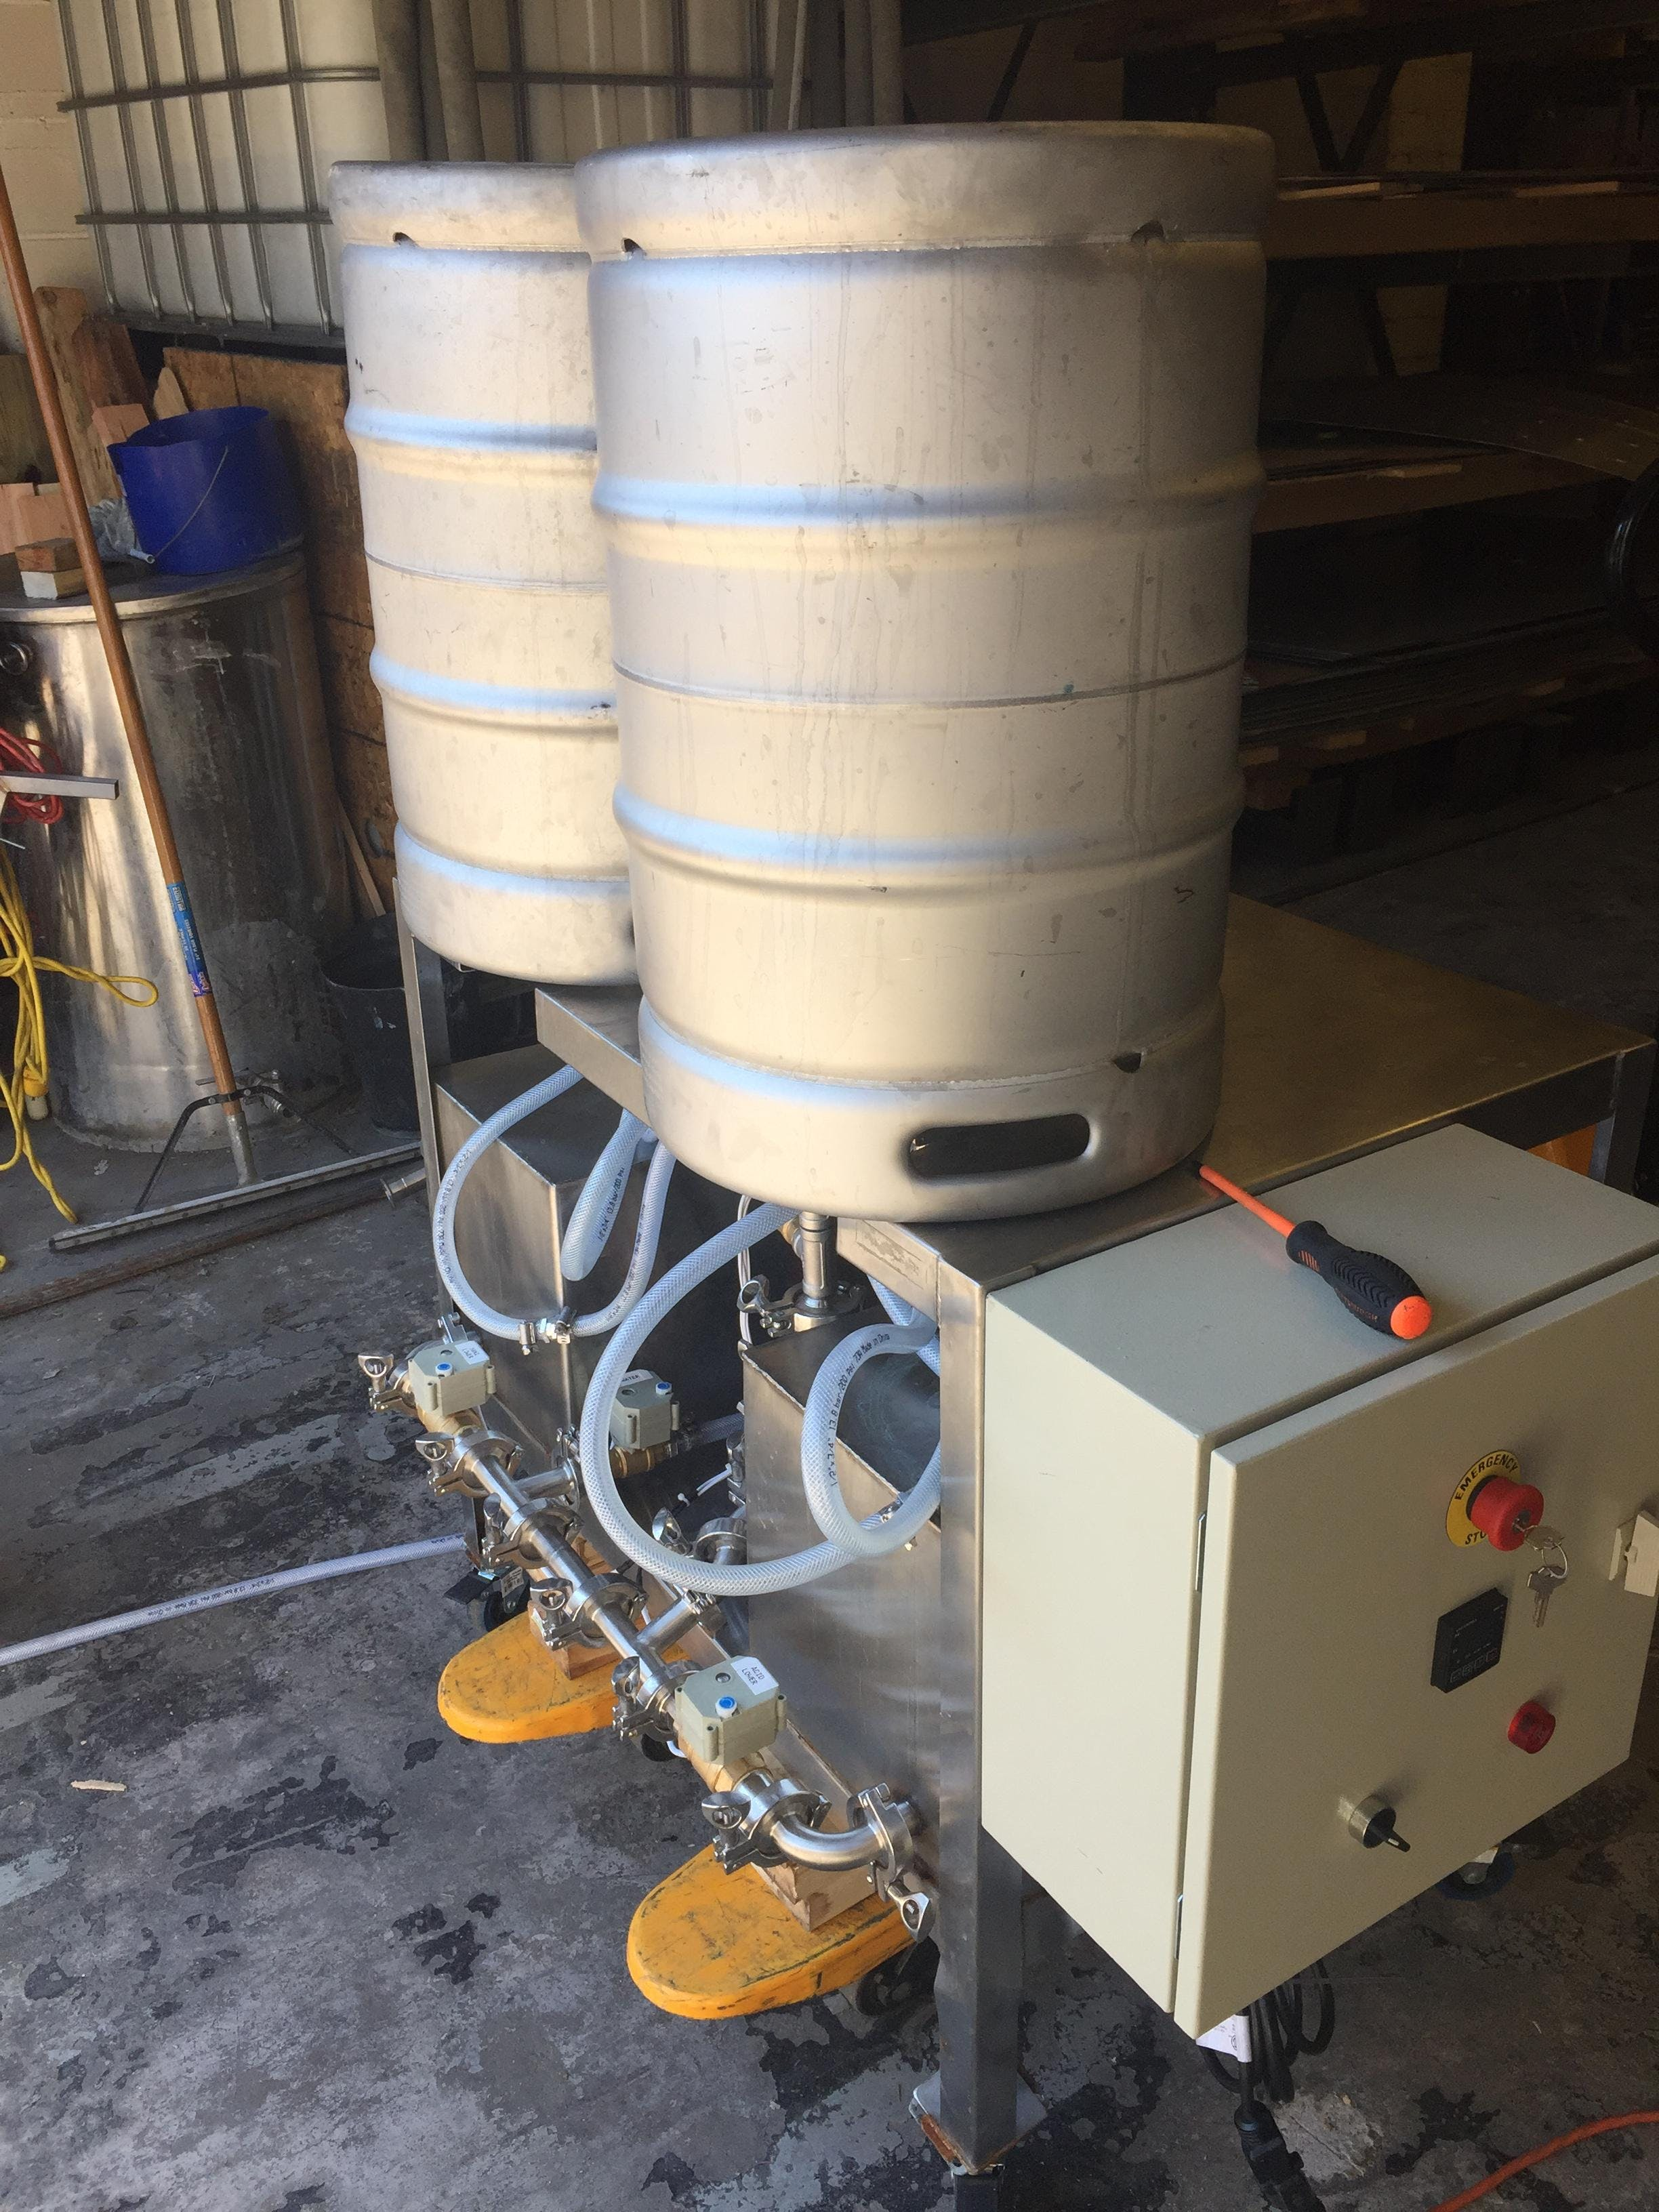 Systech Keg Washer Keg washer sold by Systech Stainless Works, LLC